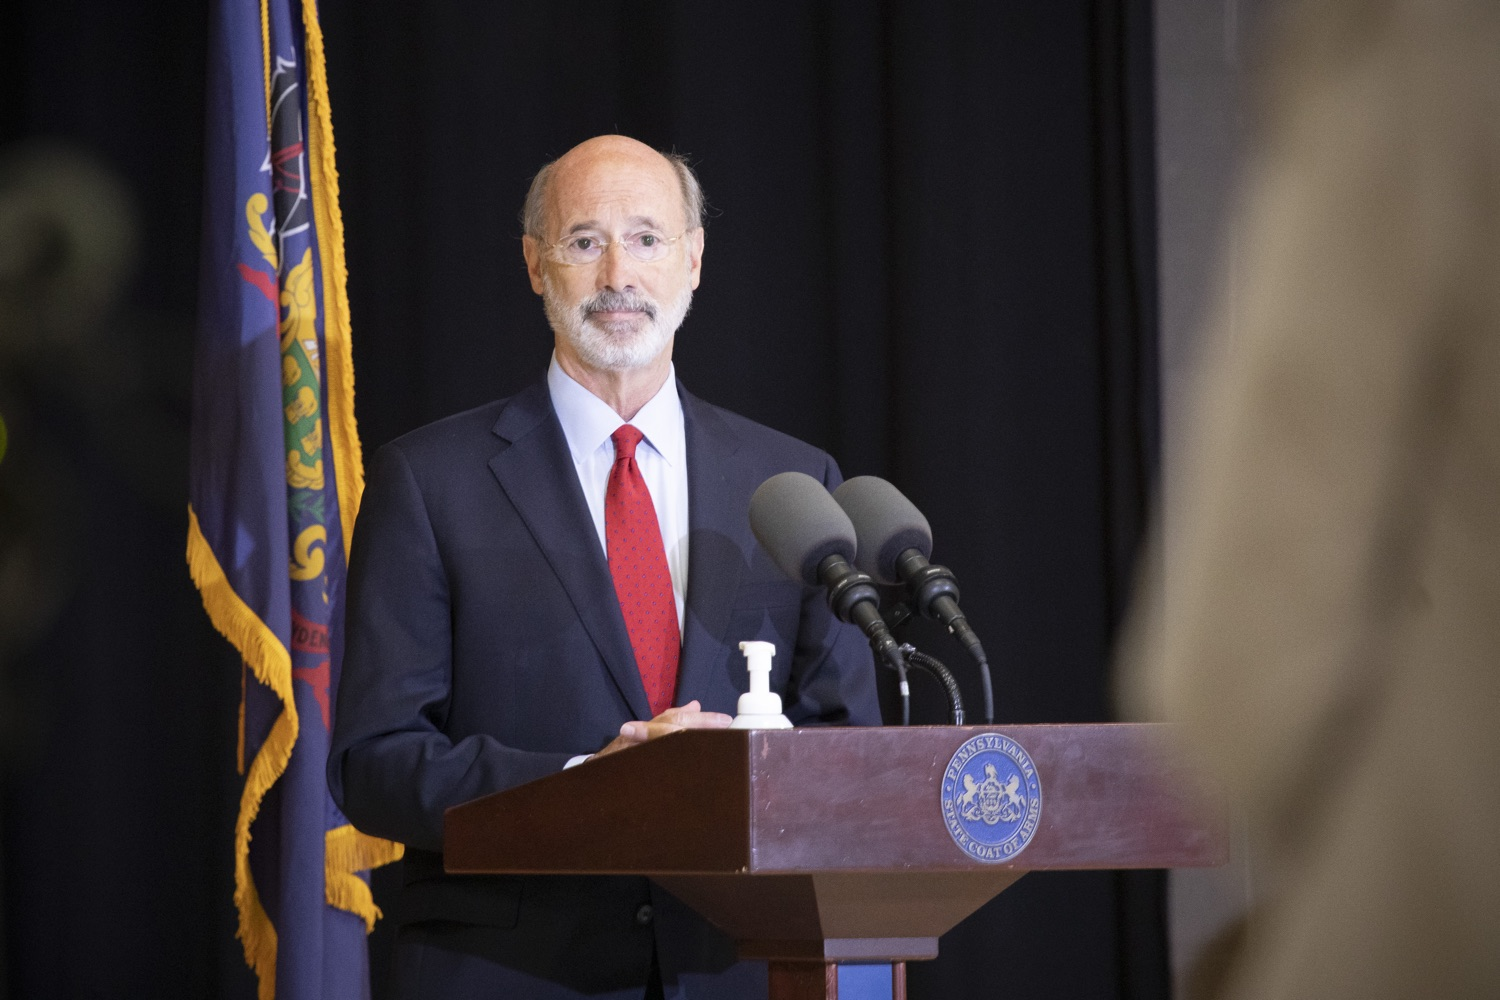 """<a href=""""https://filesource.wostreaming.net/commonwealthofpa/photo/18310_gov_adult_use_cannabis_dz_017.jpg"""" target=""""_blank"""">⇣Download Photo<br></a>Governor Tom Wolf speaks to the press.Governor Tom Wolf visited The Mountain Center in Tobyhanna, Monroe County today to talk about the economic growth potential and restorative justice benefits of legalizing adult-use cannabis, something the state General Assembly has not yet done despite multiple requests from the governor and Lieutenant Governor John Fetterman to take up legislation this fall.  Tobyhanna, PA  October 13, 2020"""